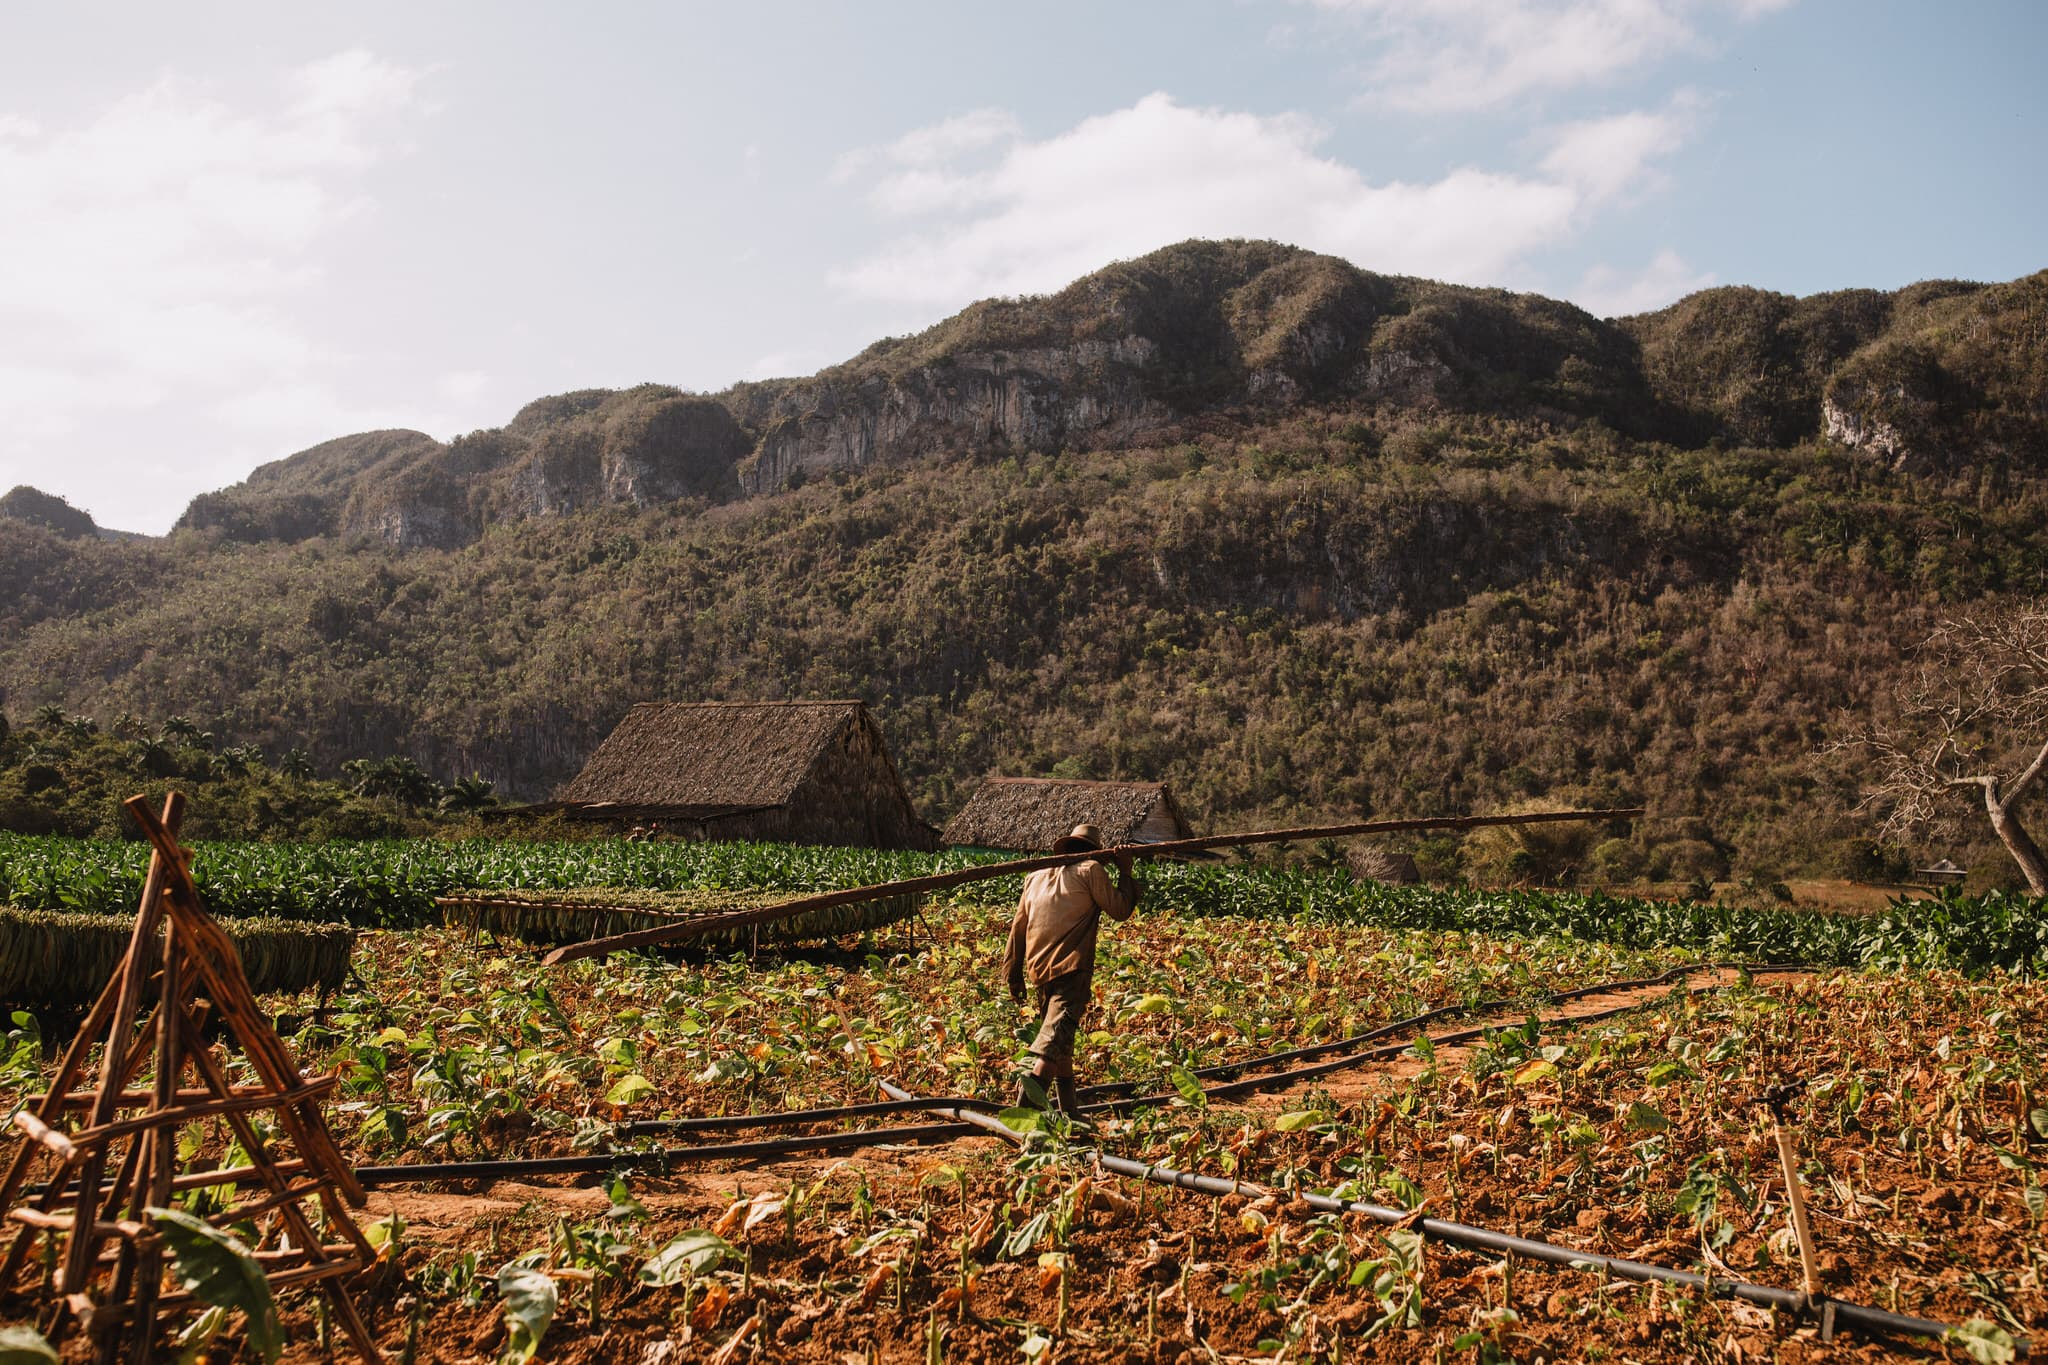 A tobacco farmer walks through the crops on cigar farm in Vinales, Cuba. Wedding and travel photographer Brent Calis.